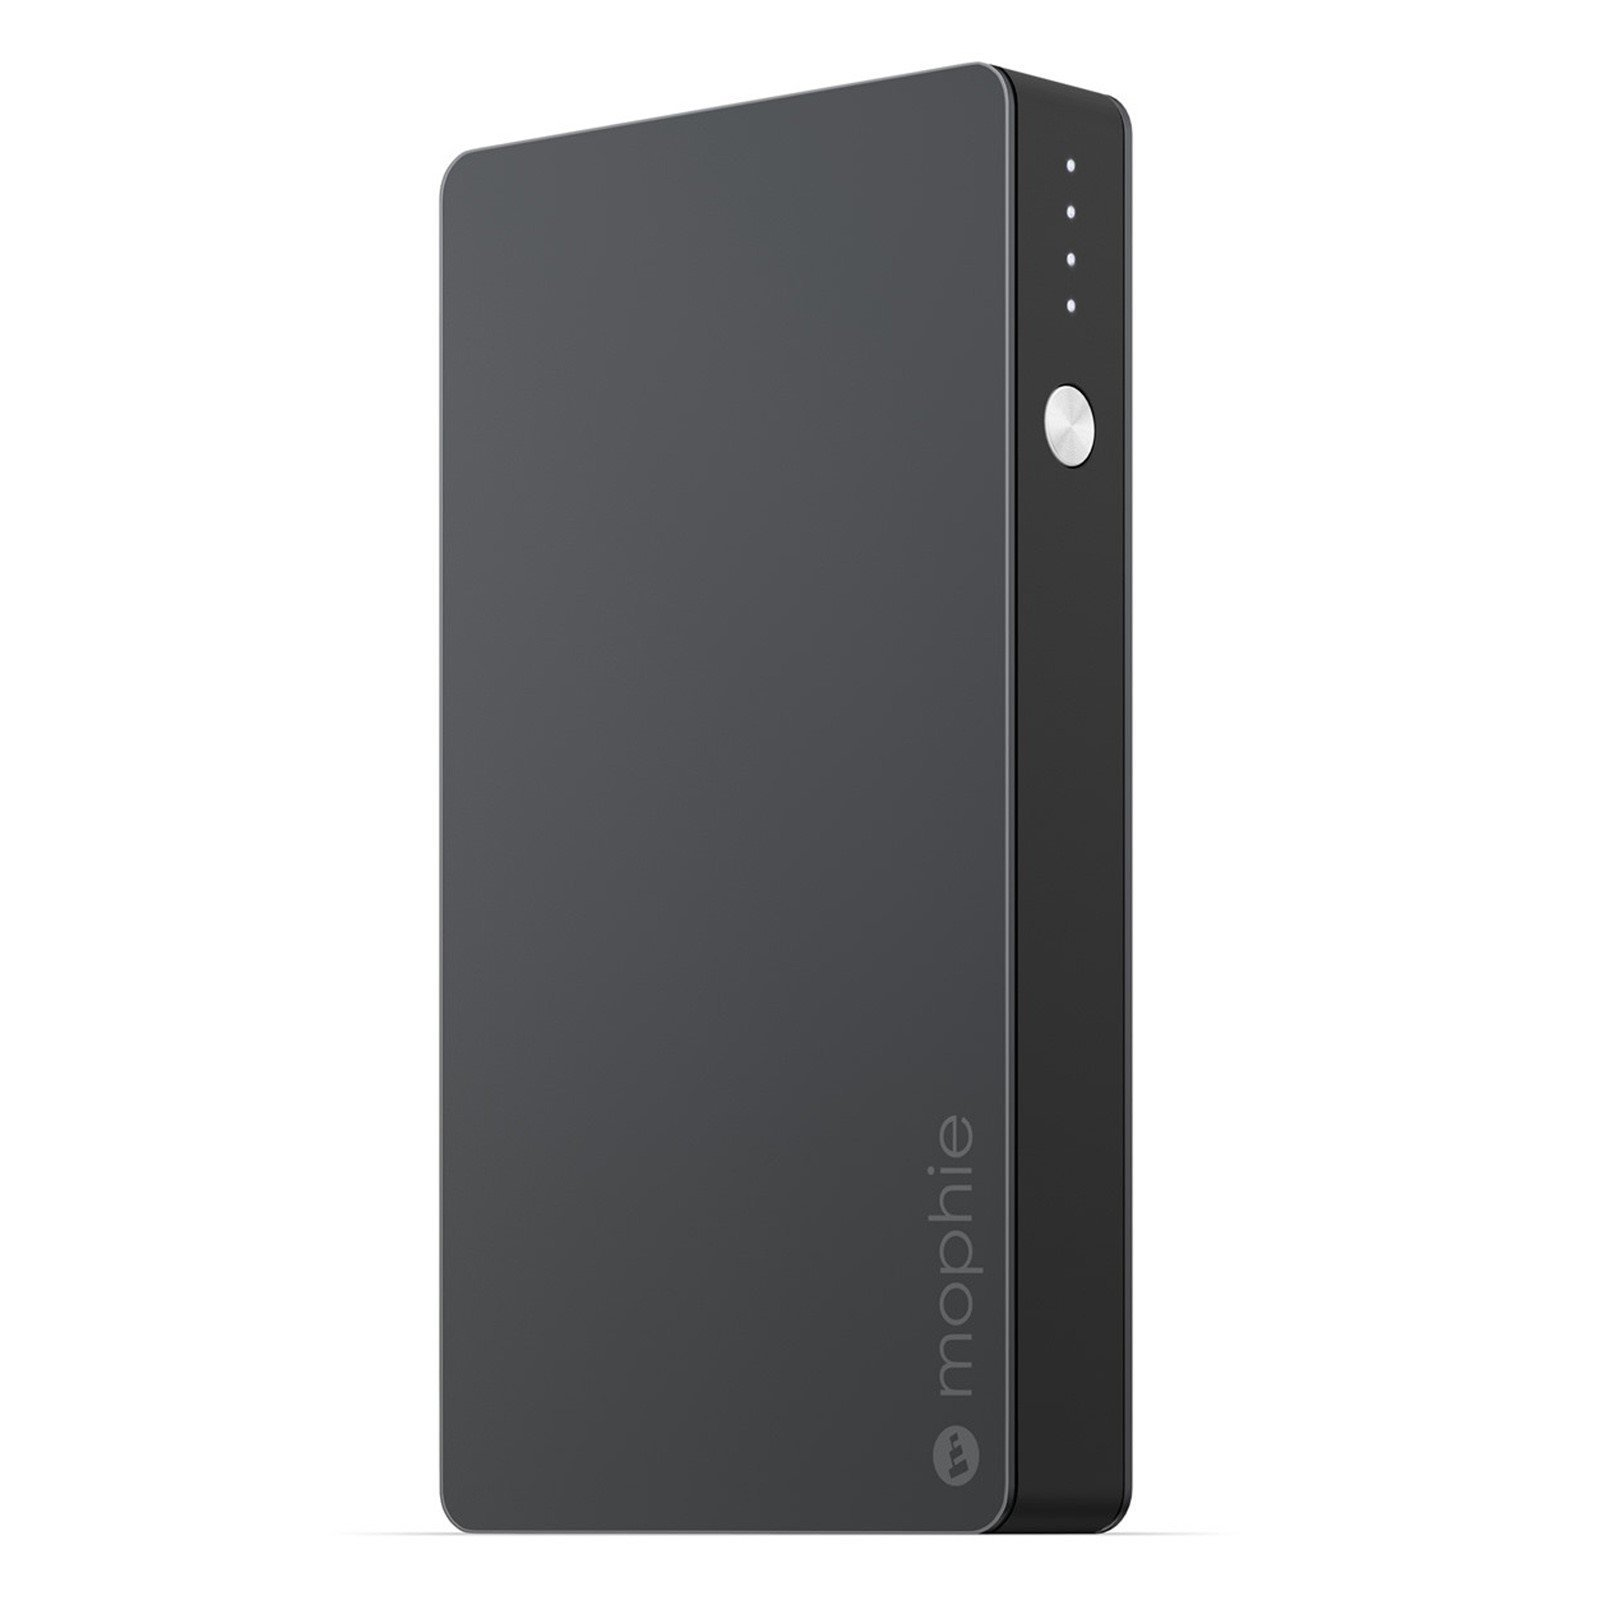 Mophie Spacestation Portable 32GB Storage and External Battery for Smartphones and Tablets (6,000mAh) - USB Port Universal Compatibility with All Devices - Black (Certified Refurbished)